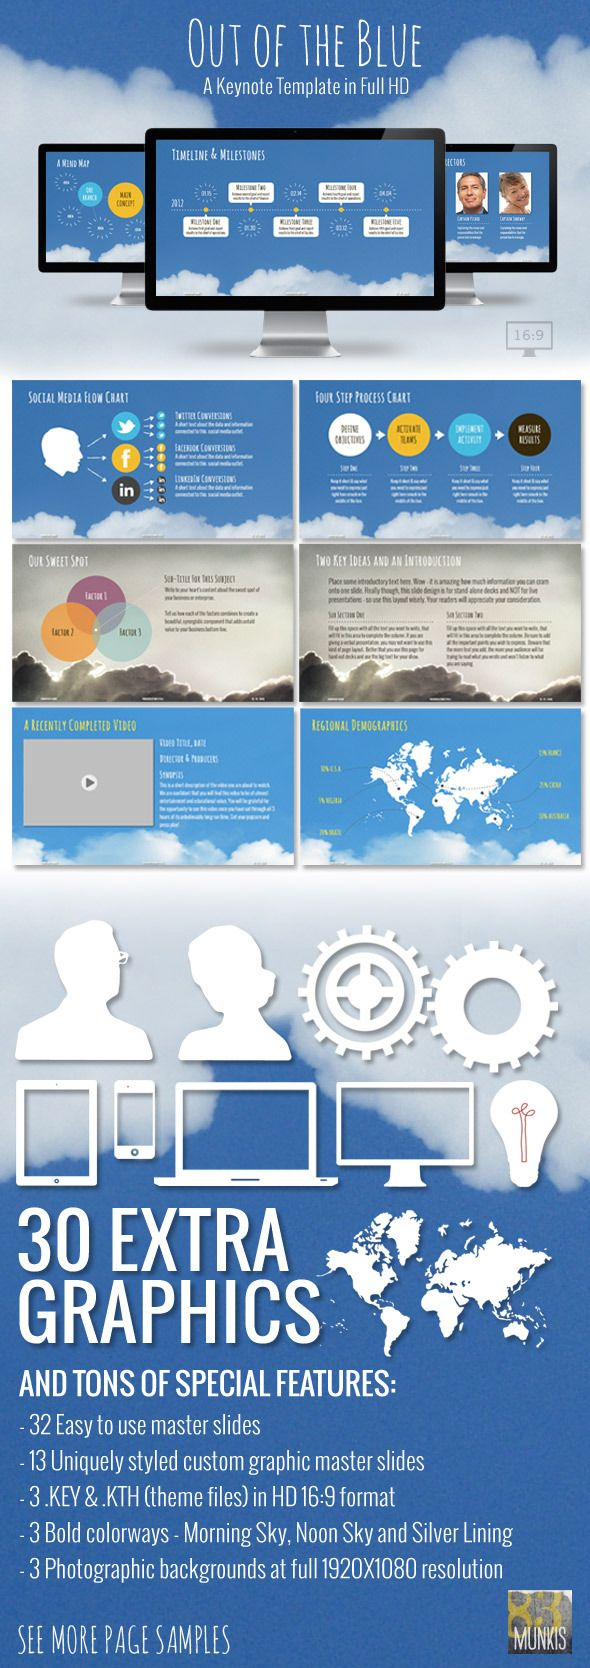 Out of the blue keynote presentation template pinterest keynote out of the blue keynote presentation template theme thmx social media networking clean available here toneelgroepblik Images